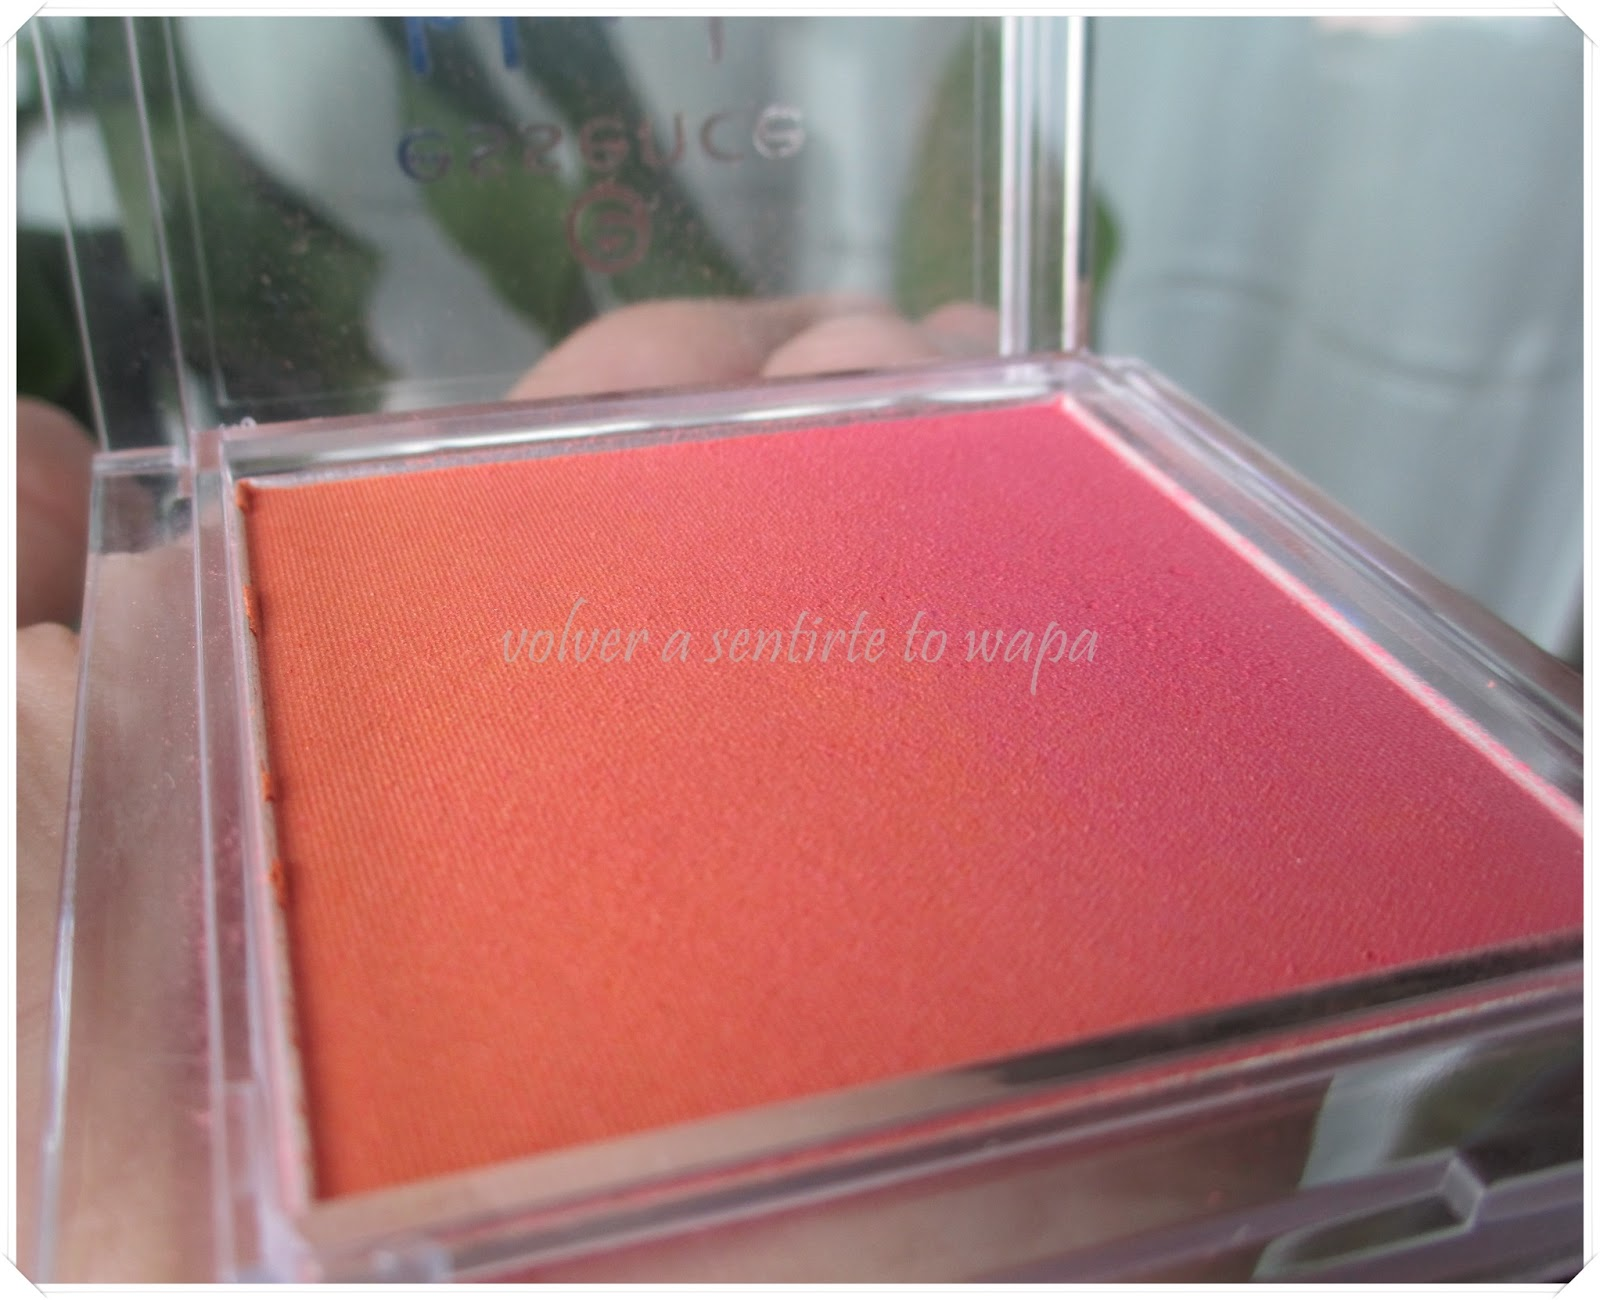 Coloretes de Essence - Blush up! - 10 heat wave